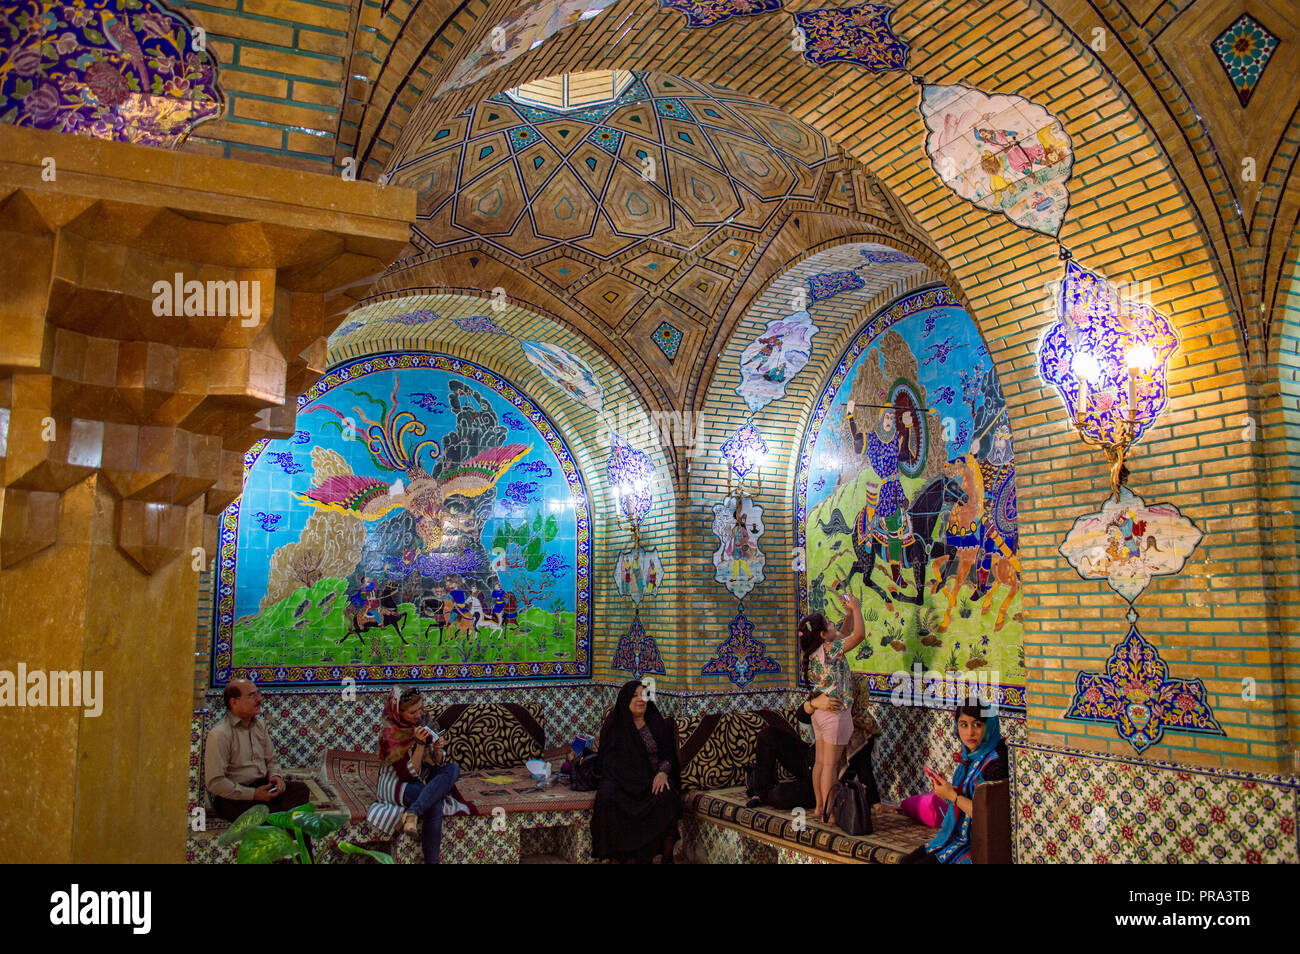 Inside the tea room at Afif Abad Garden in Shiraz, Iran - Stock Image